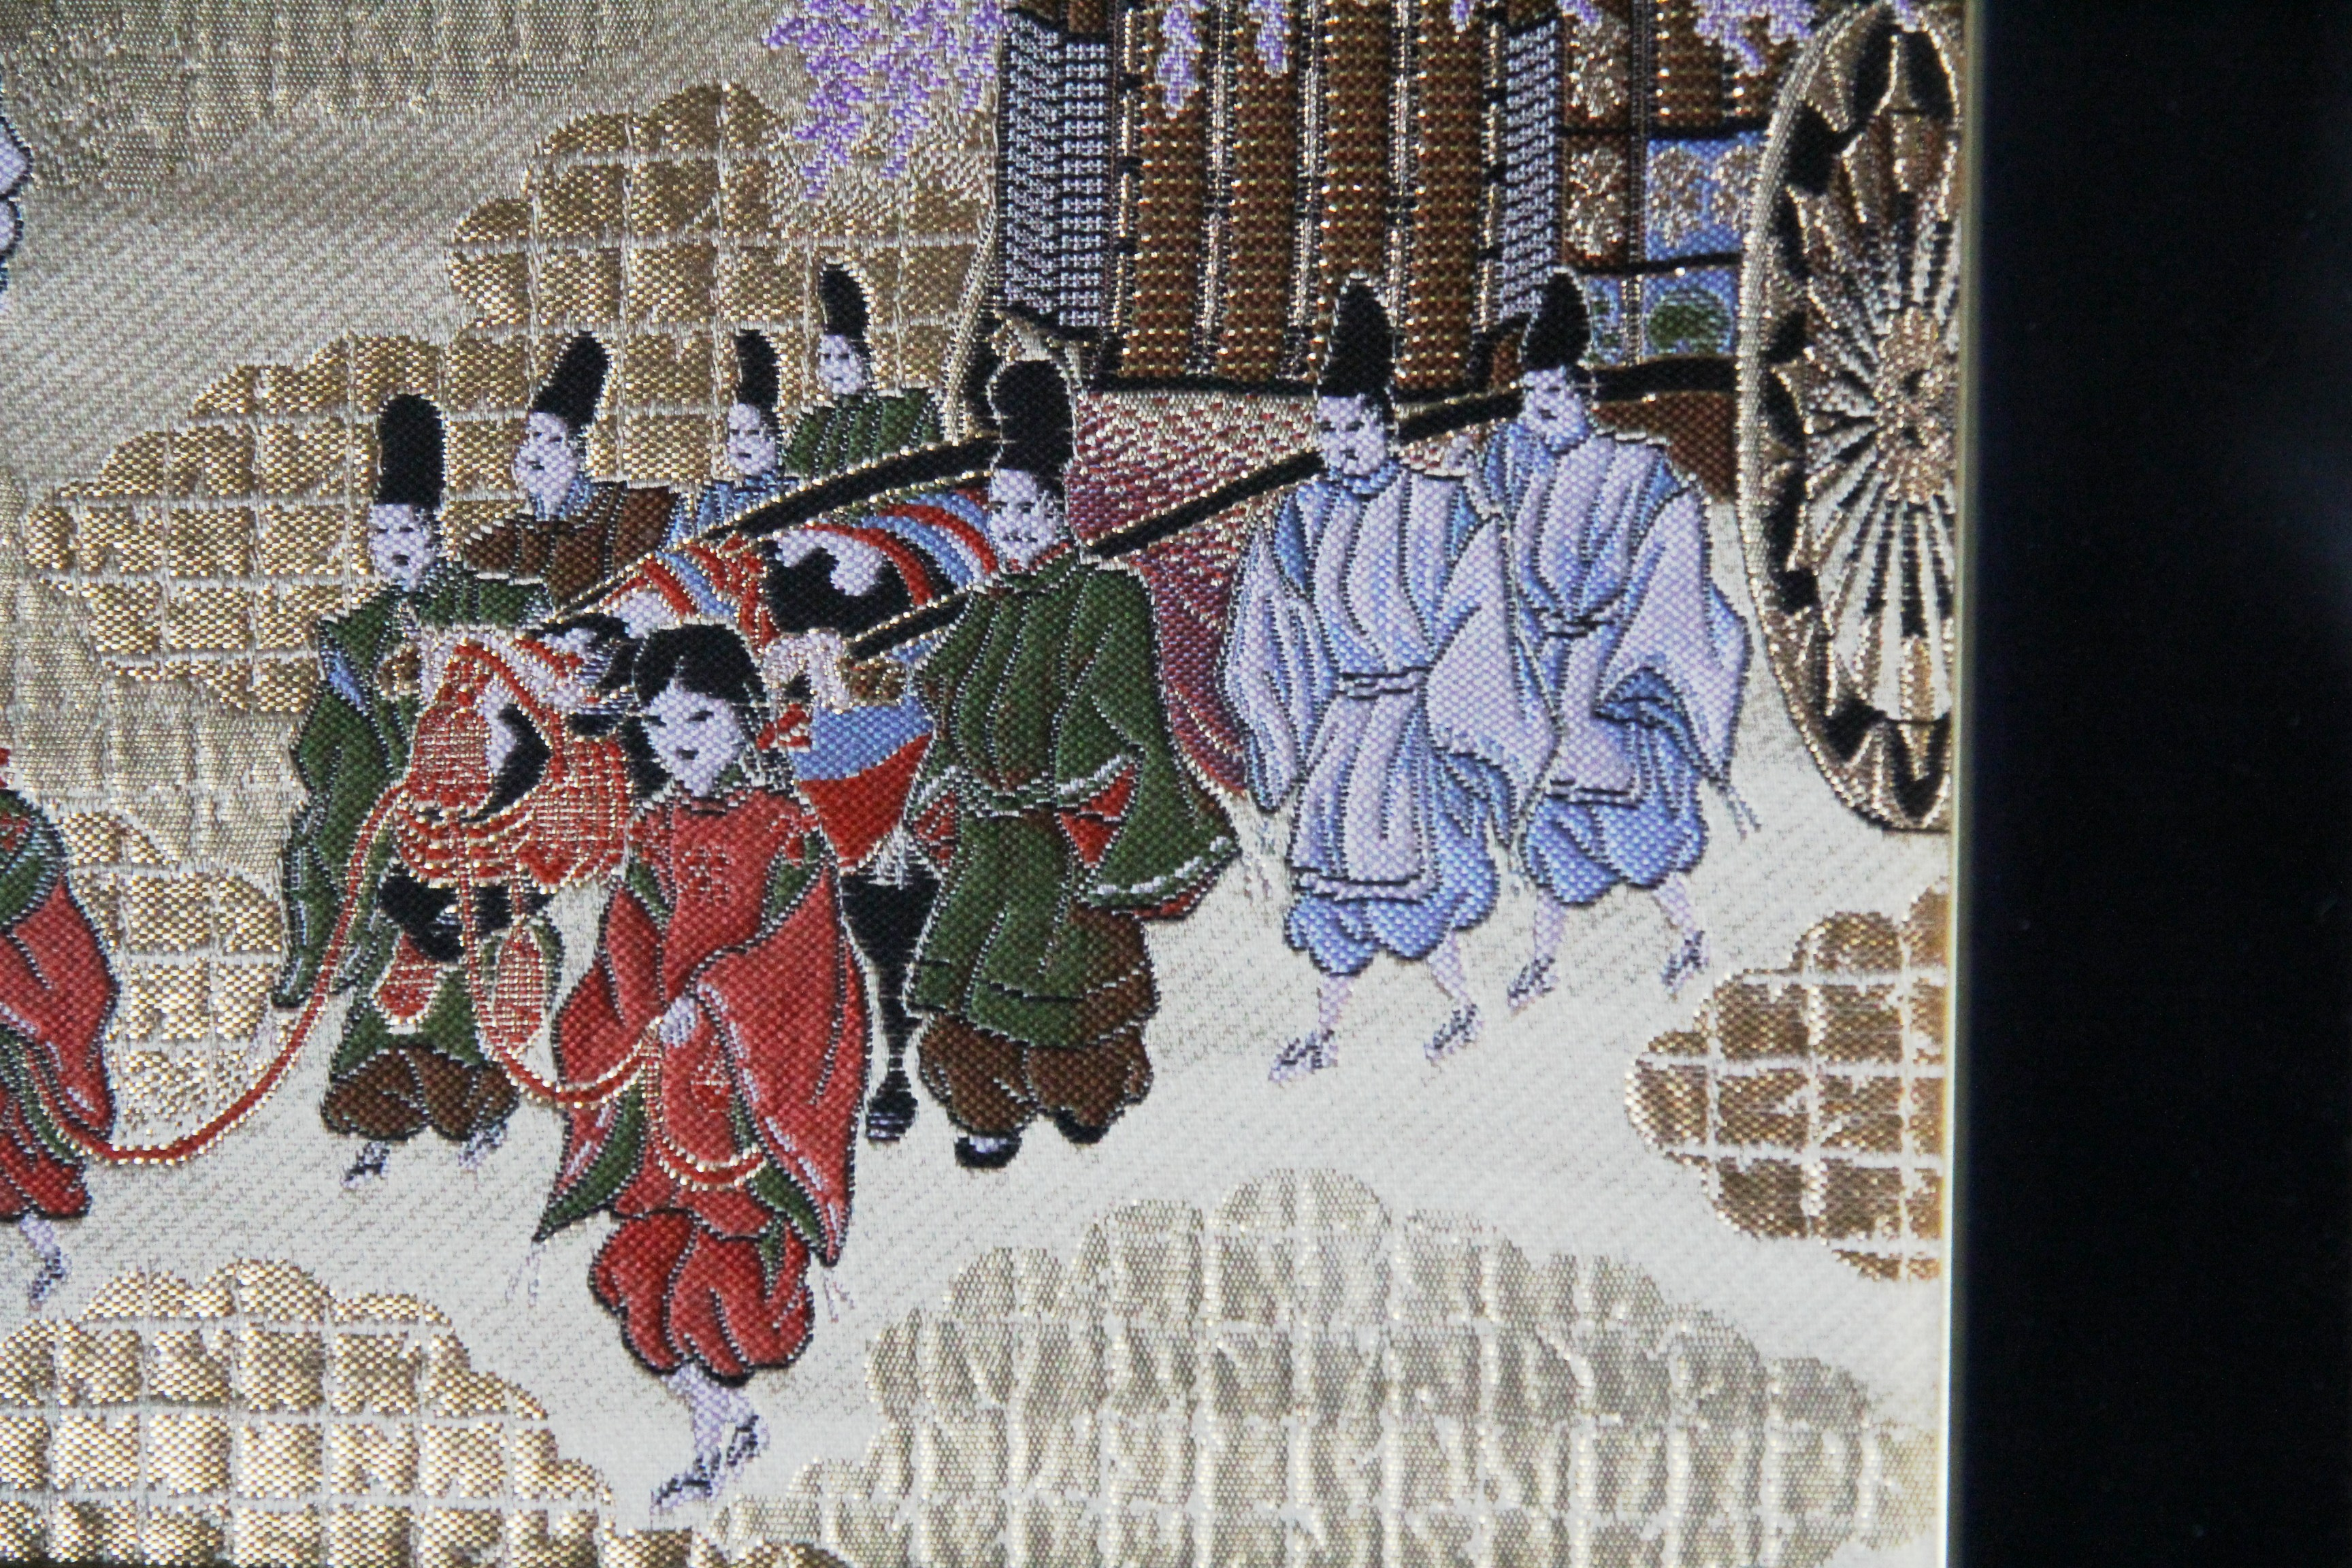 Image 1 of Framed Kyonishiki Tapestry from Nishi-jin, Kyoto, Japan (original), Cart Process